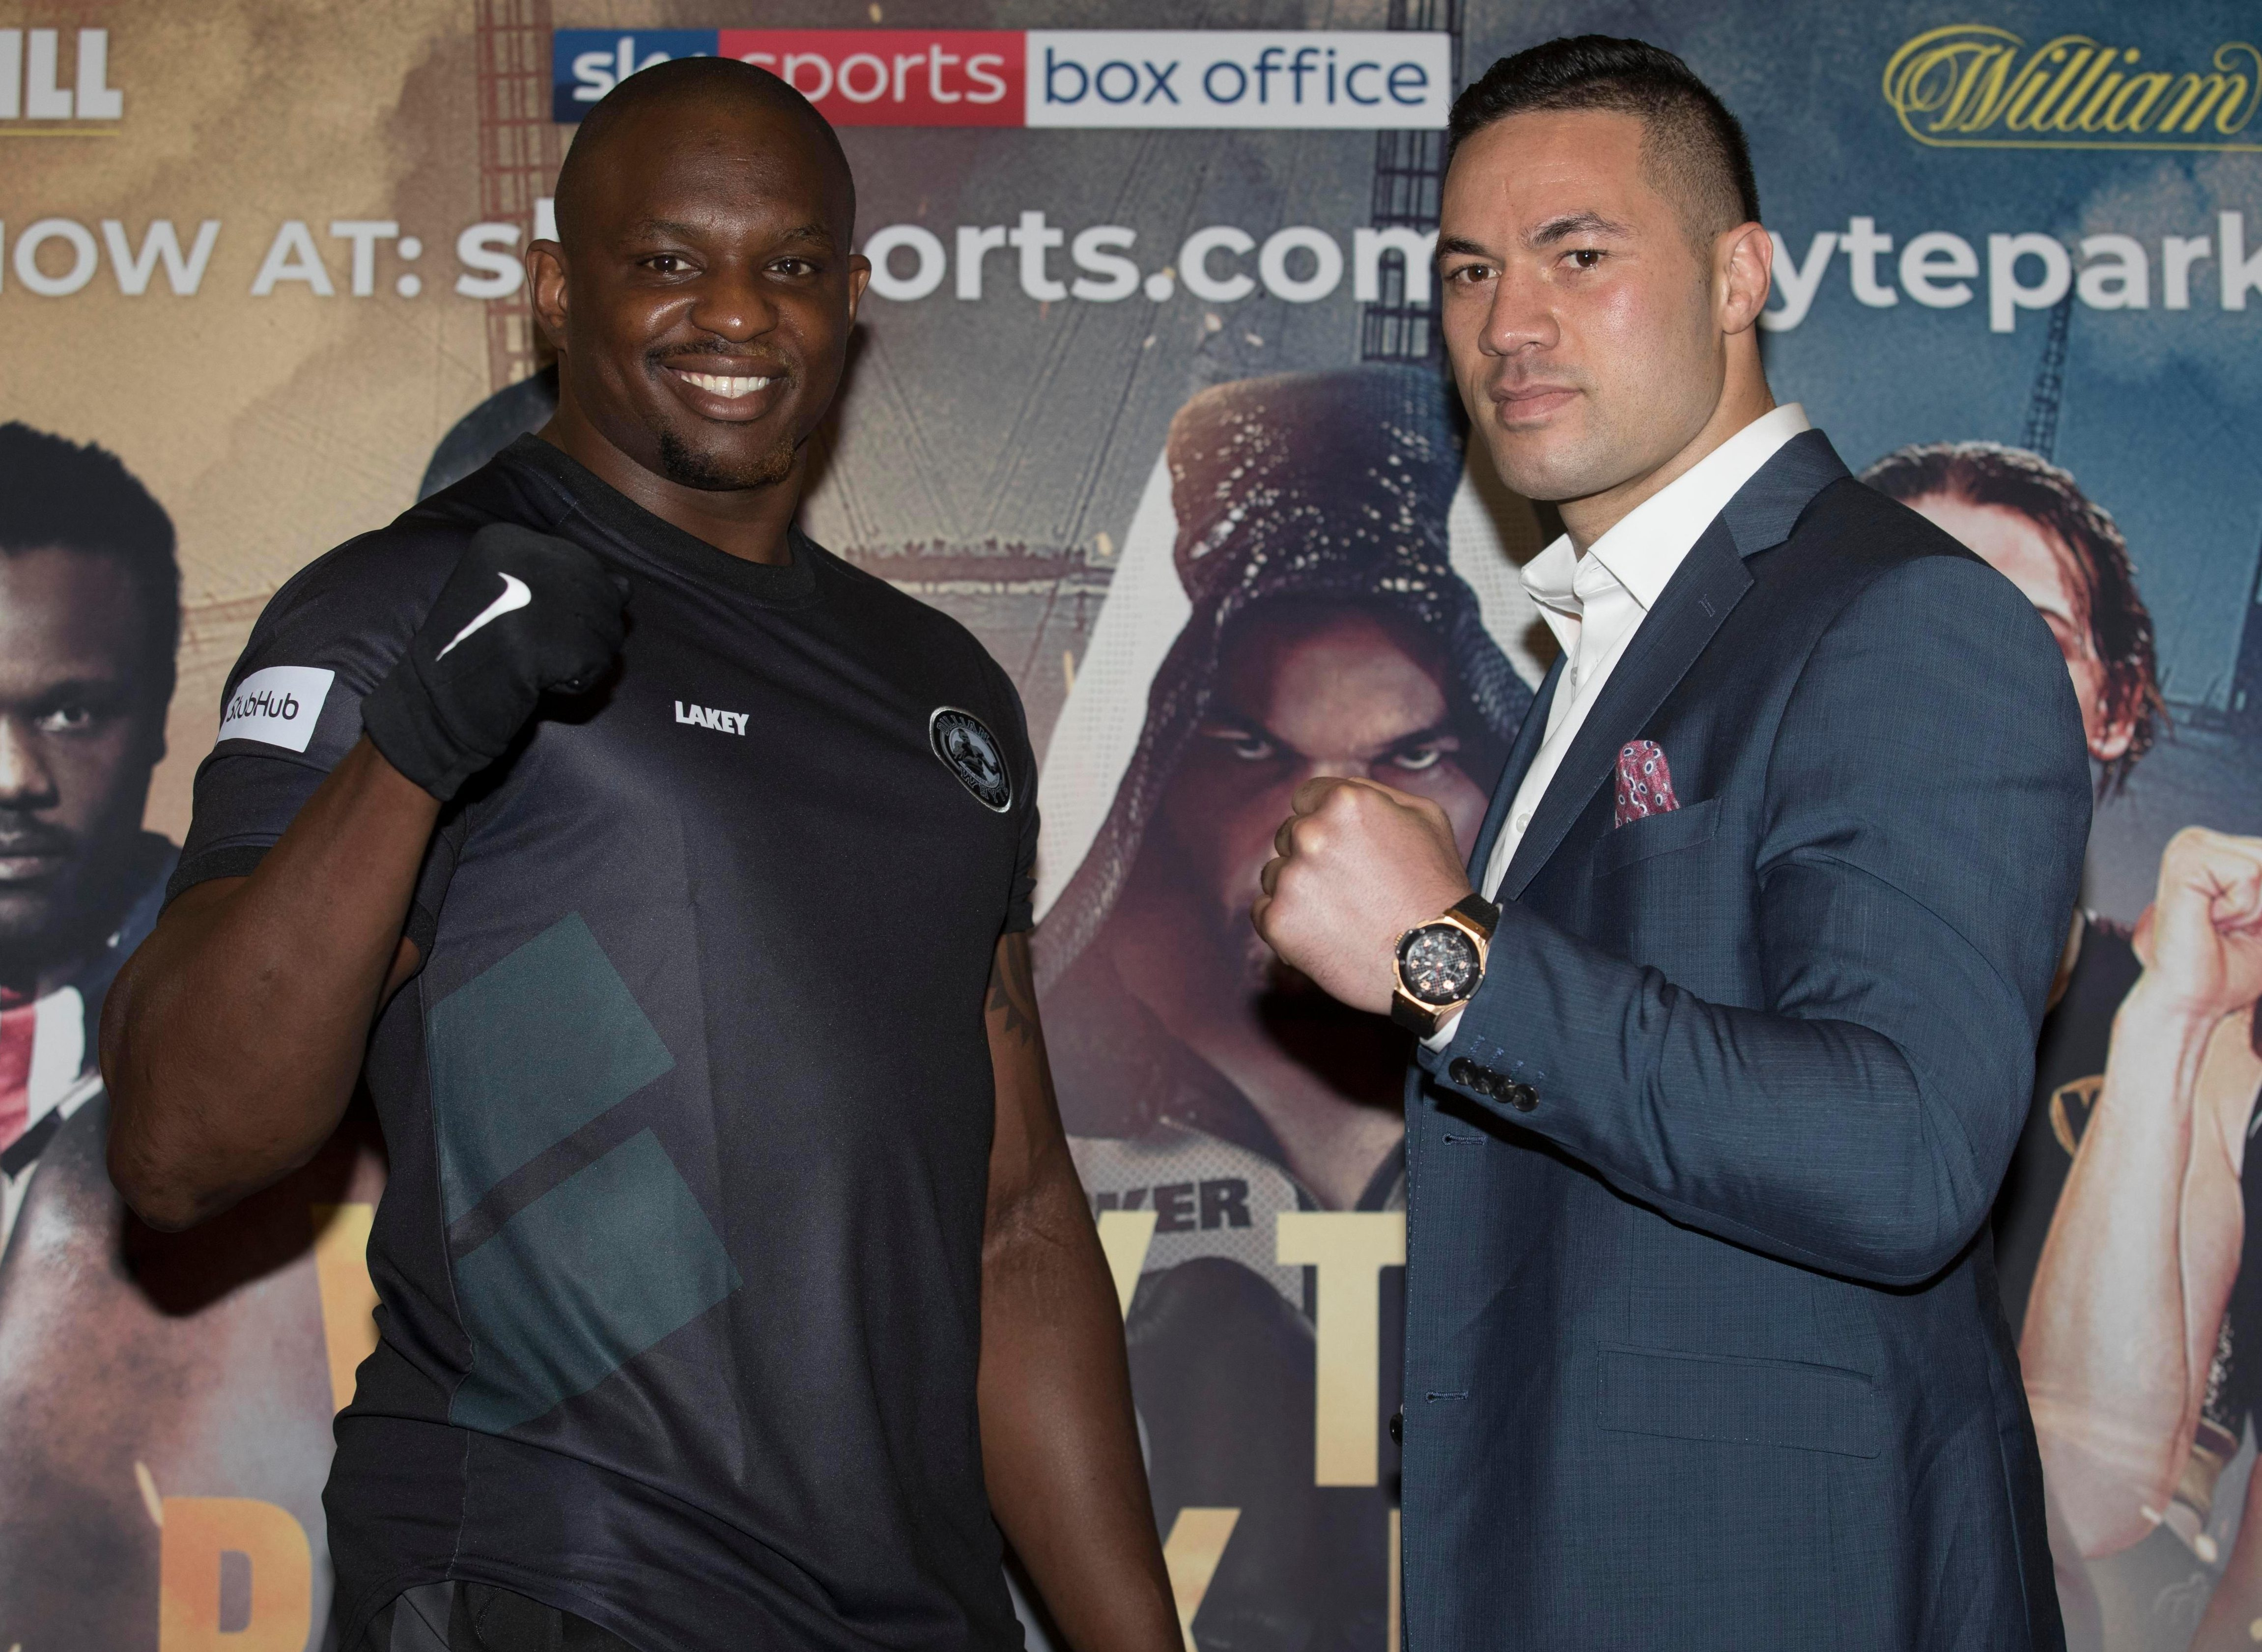 The winner between Dillian Whyte and Joseph Parker could well get a world title shot against Anthony Joshua or Deontay Wilder